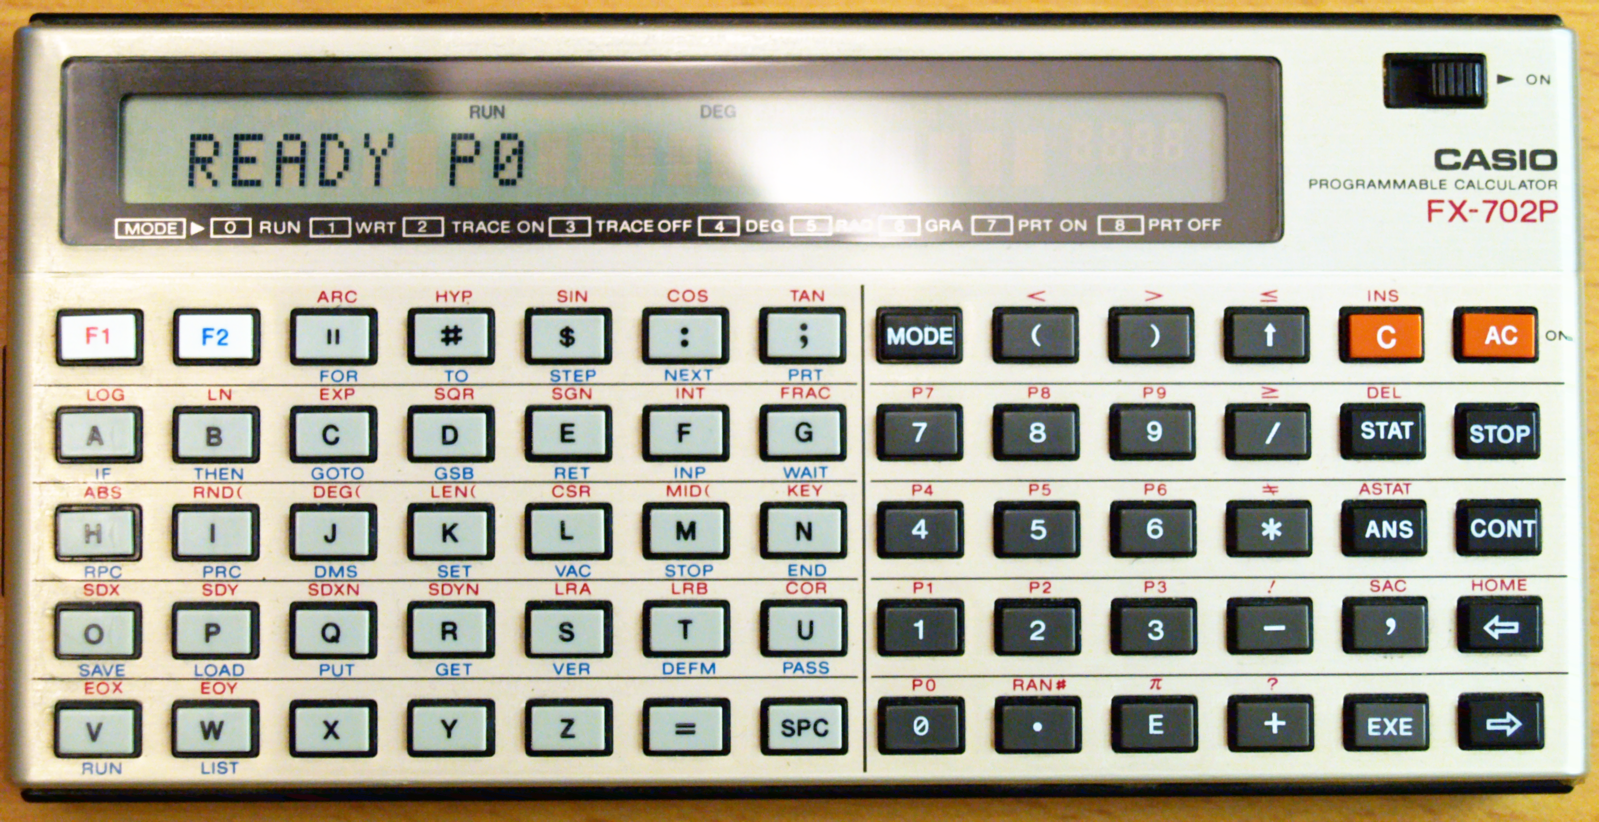 Casio FX-702P Programmable Calculator